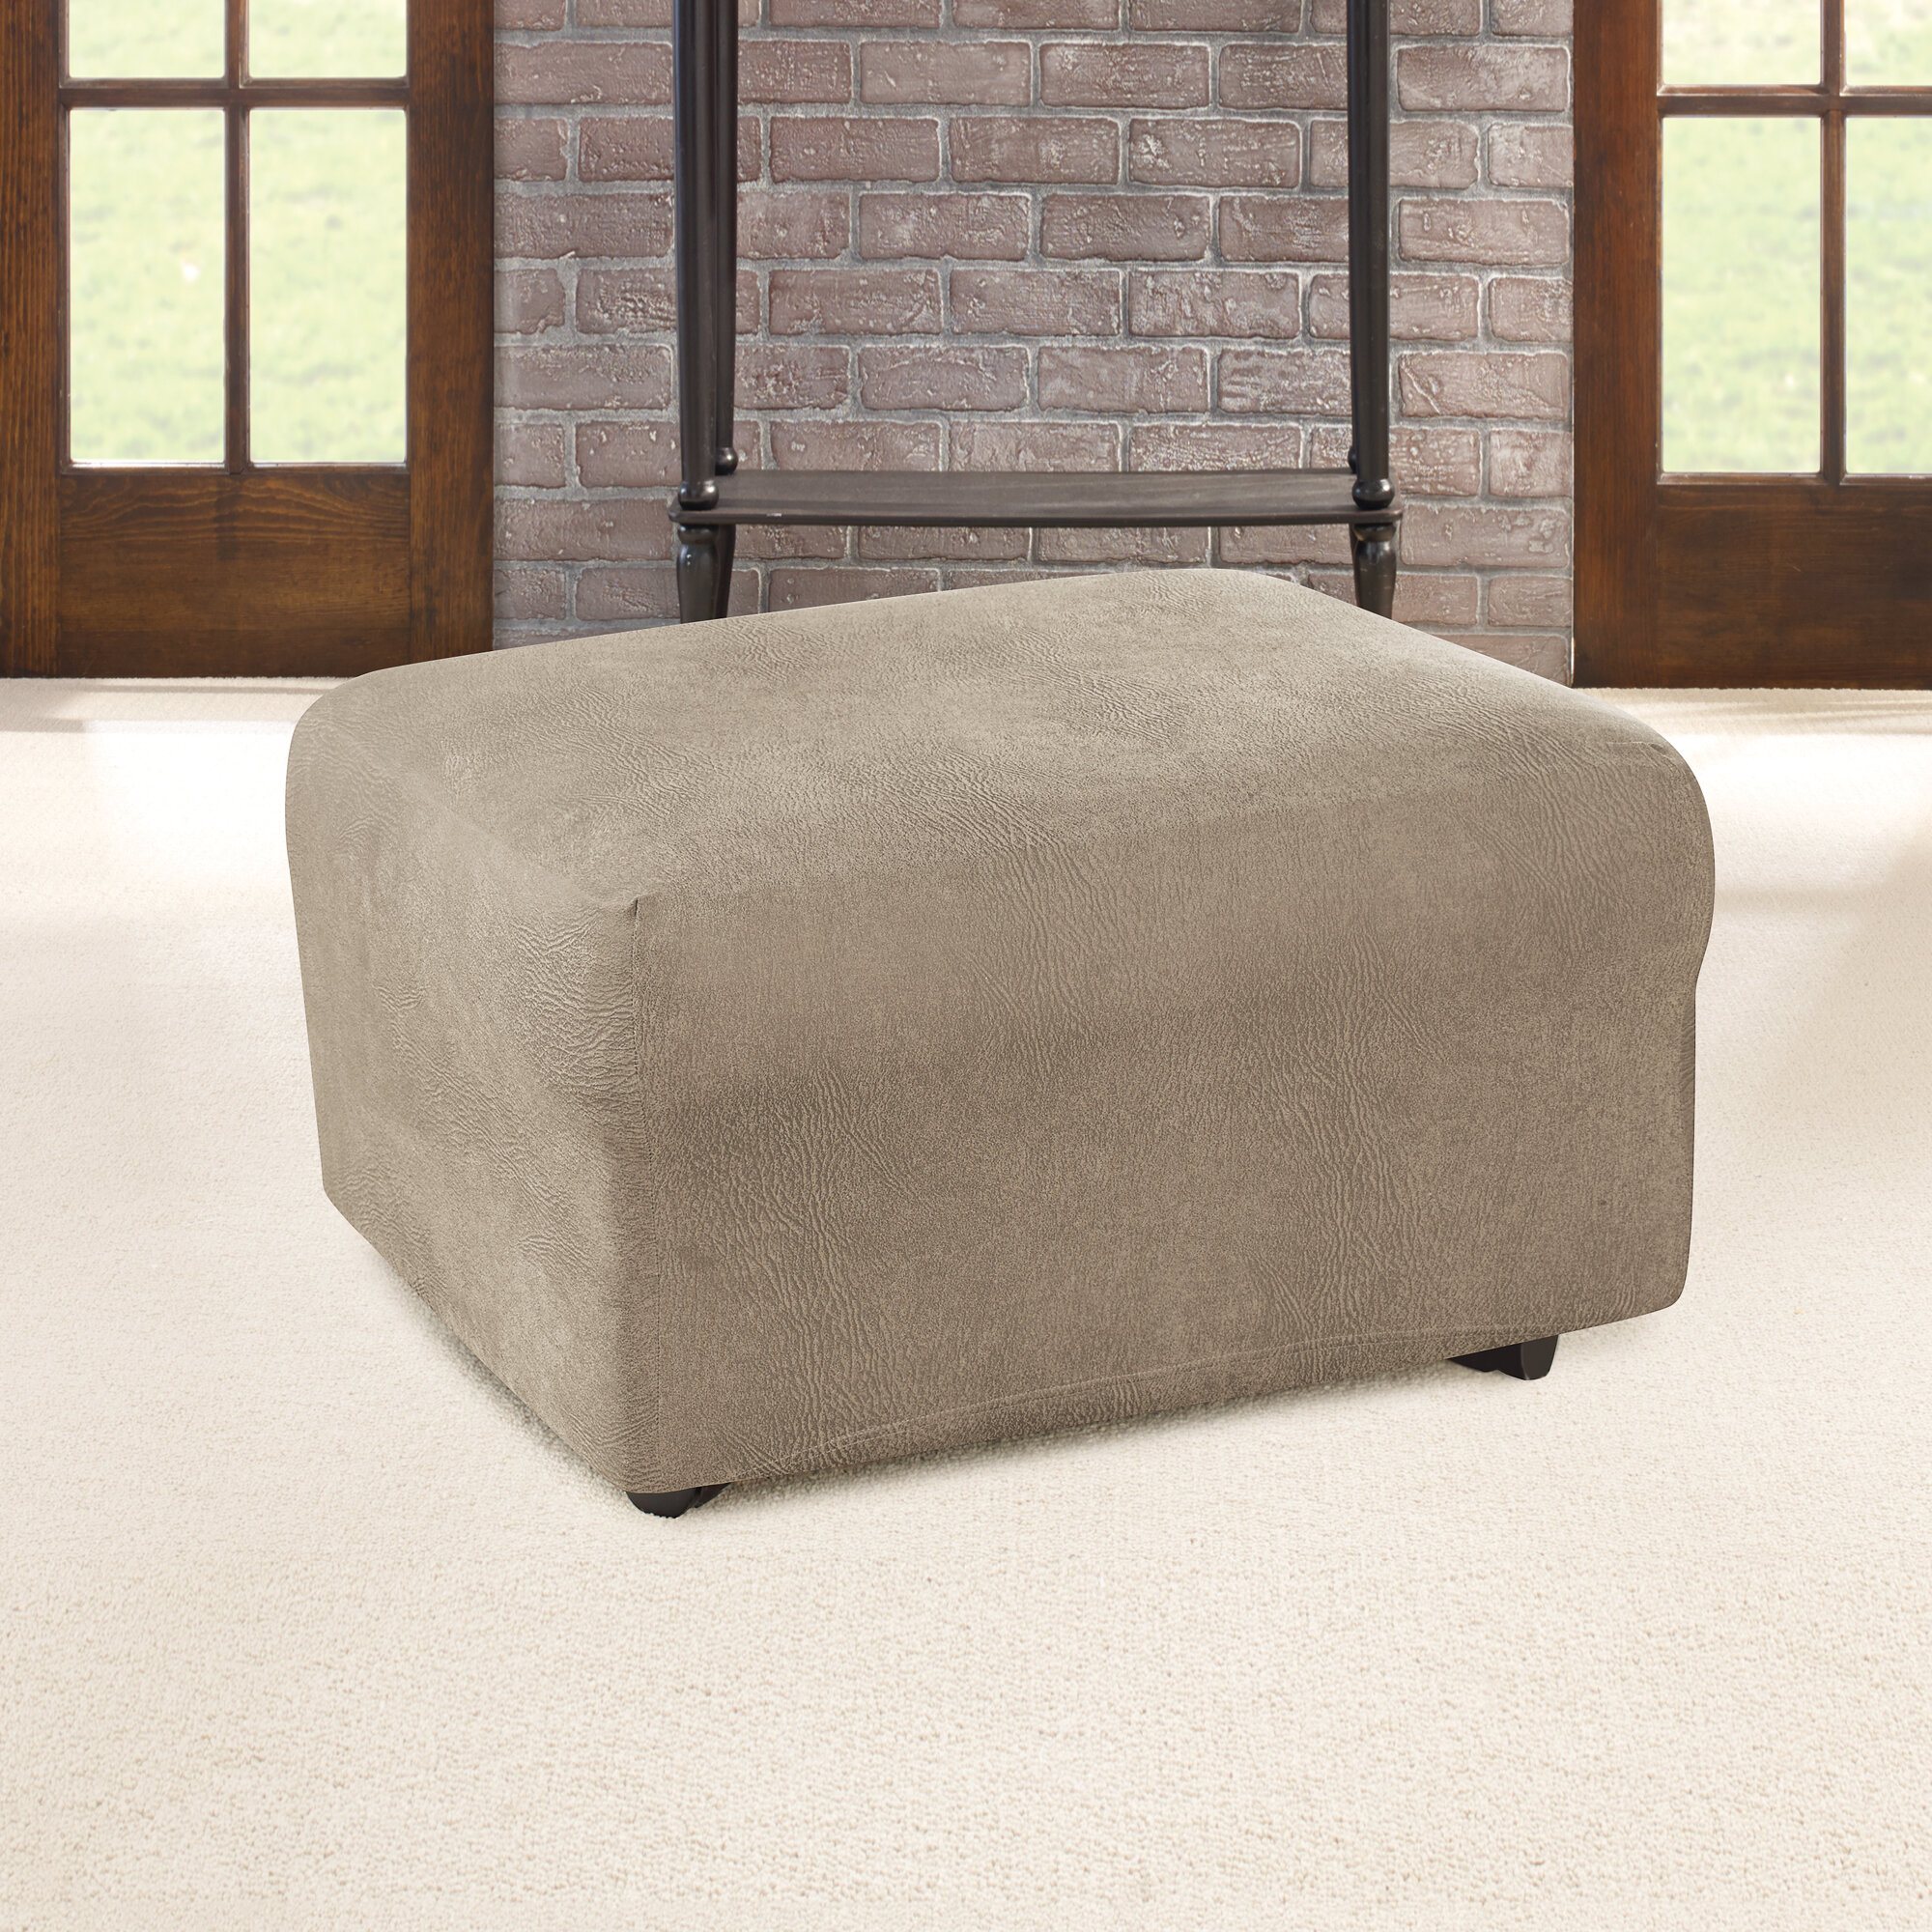 Sure Fit Ultimate Heavyweight Stretch Leather Box Cushion Ottoman Slipcover Reviews Wayfair